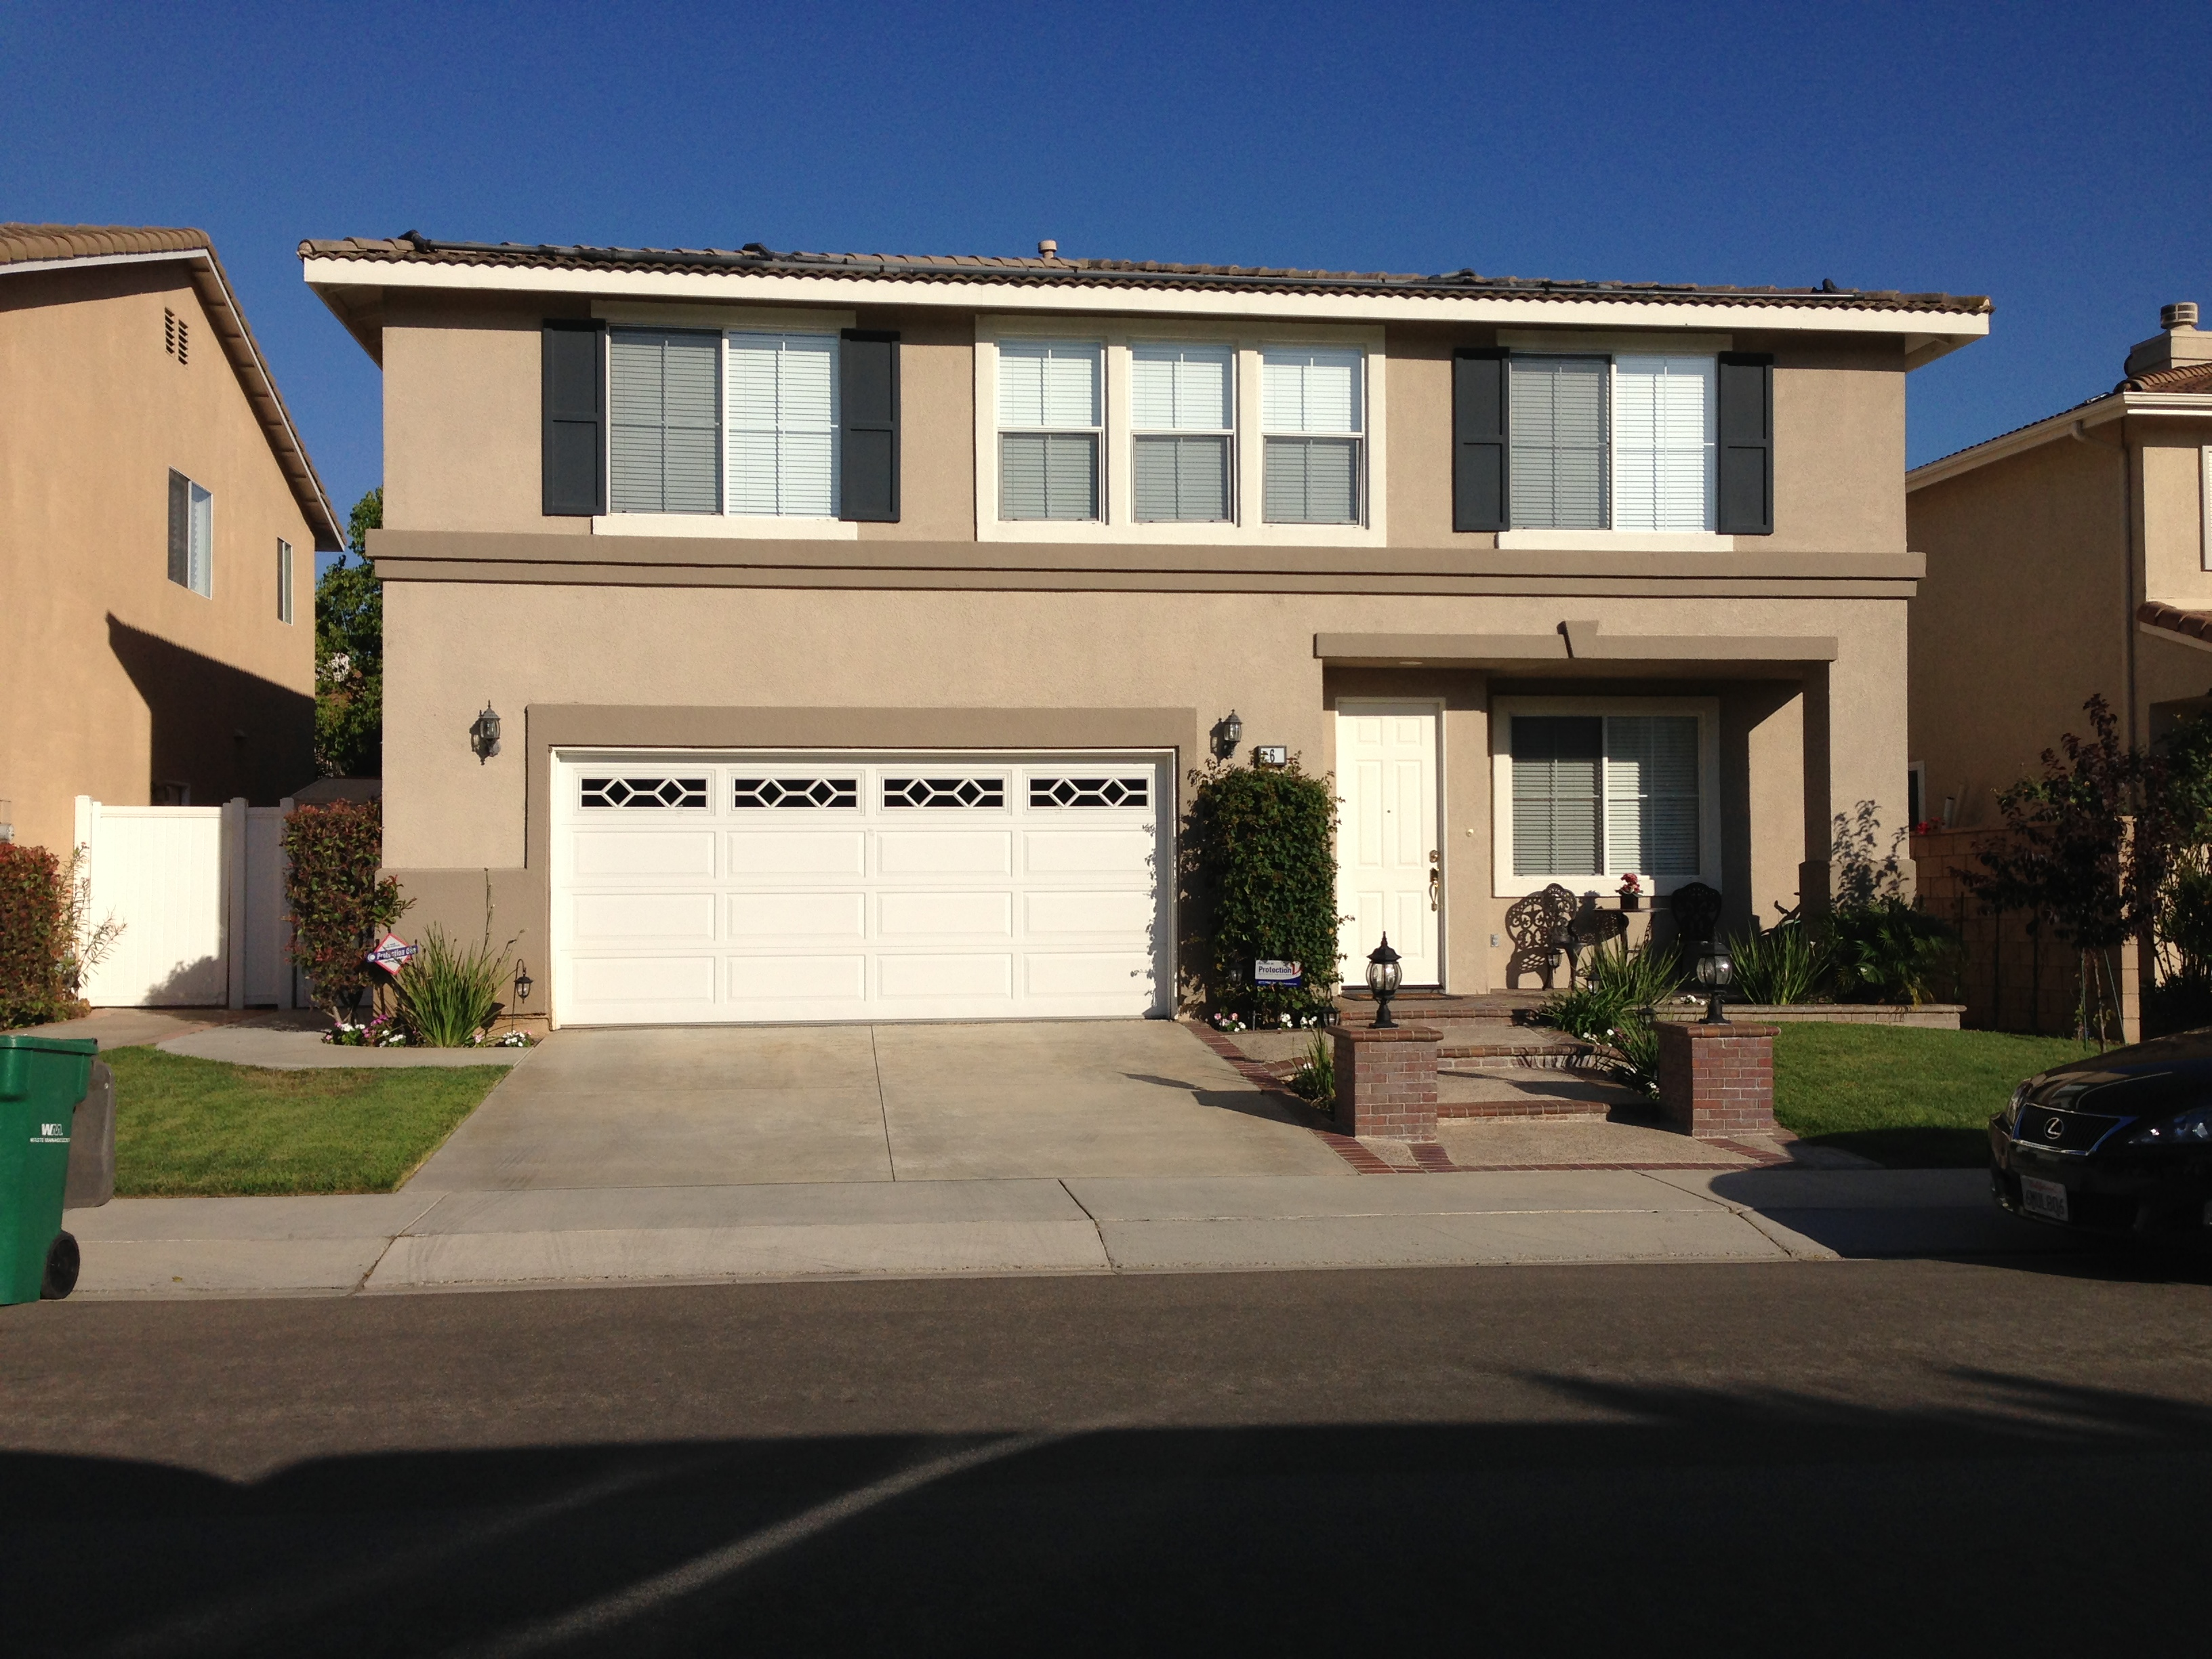 The Garage Door Is A Focal Point Of Any Homes Curb Appeal. A First  Impression Can Be Formed Within 10 Seconds. Donu0027t Let The Look Of Your Garage  Door Have A ...